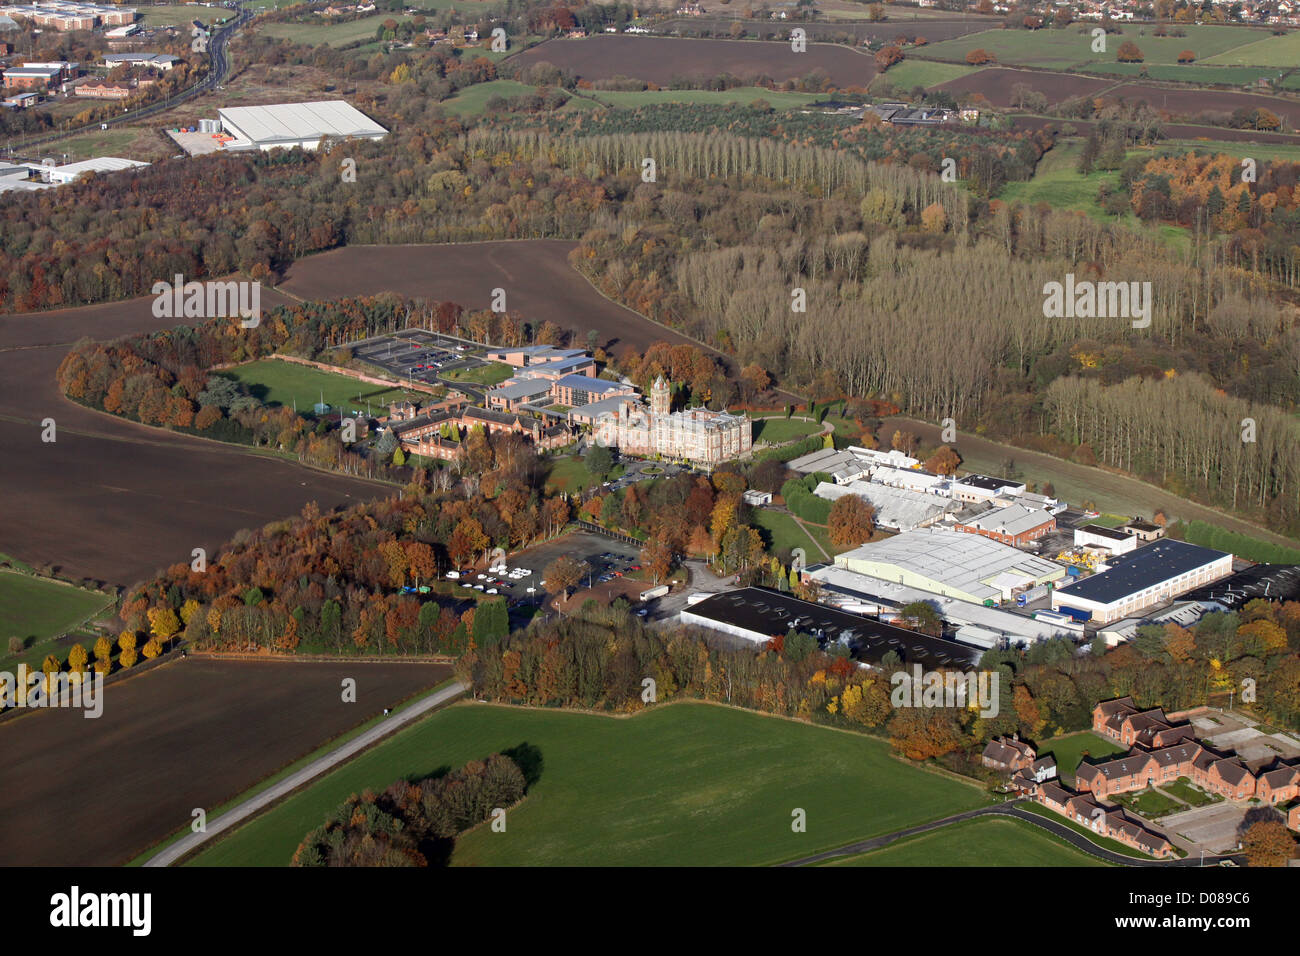 aerial view of Crewe Hall Hotel and surrounding area in Cheshire - Stock Image